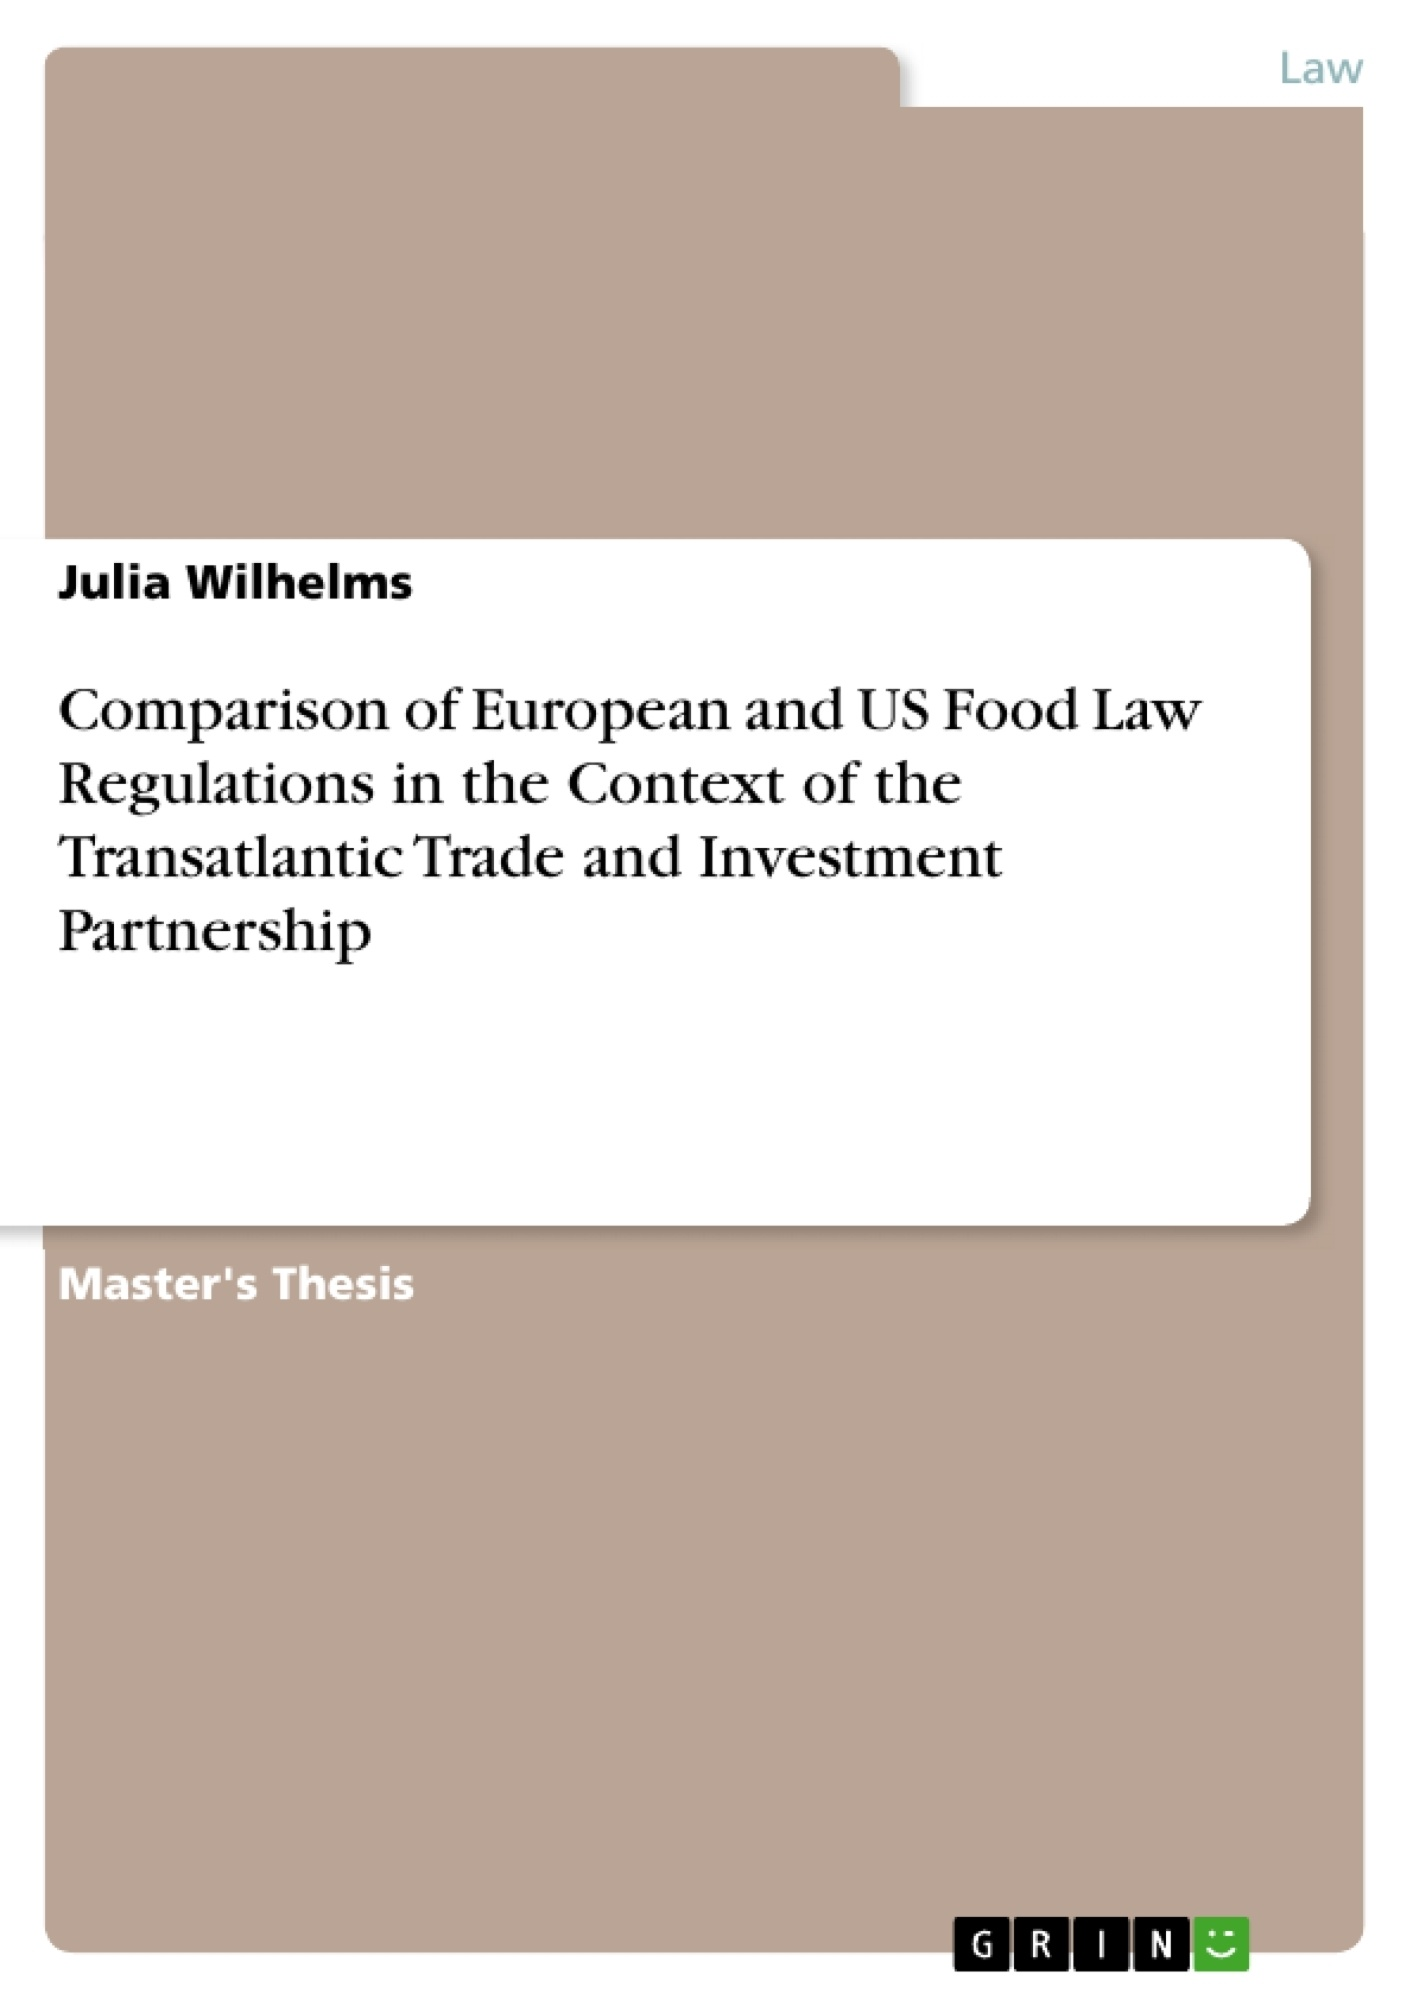 Comparison Of European And Us Food Law Regulations In The Context  Upload Your Own Papers Earn Money And Win An Iphone X Cause And Effect Essay Papers also Thesis Statement Analytical Essay  Creative Writing Companies